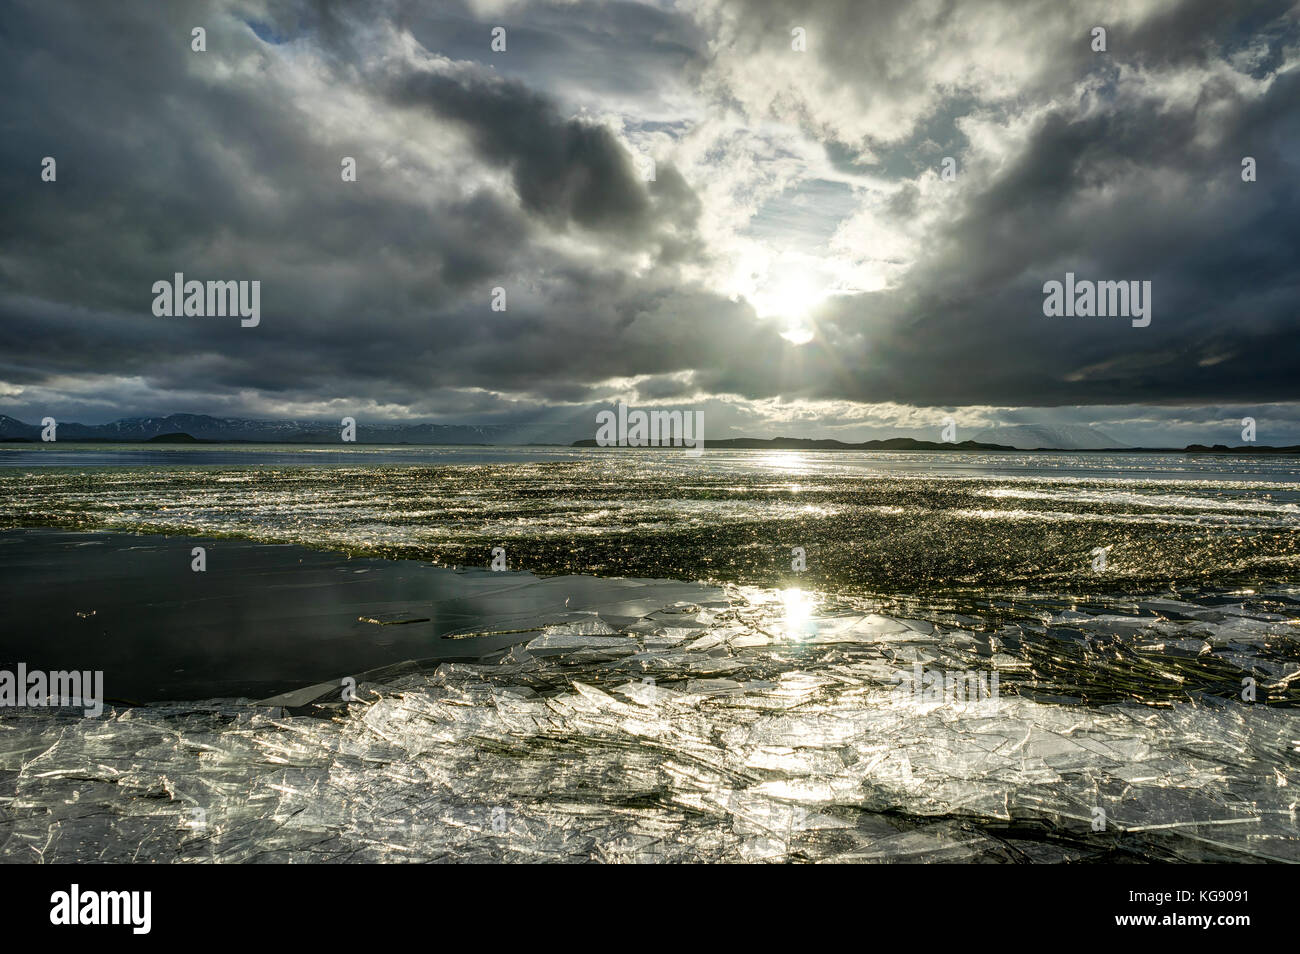 Winter Landscape frozen lake with ice floes and cloudy sky in Ic - Stock Image